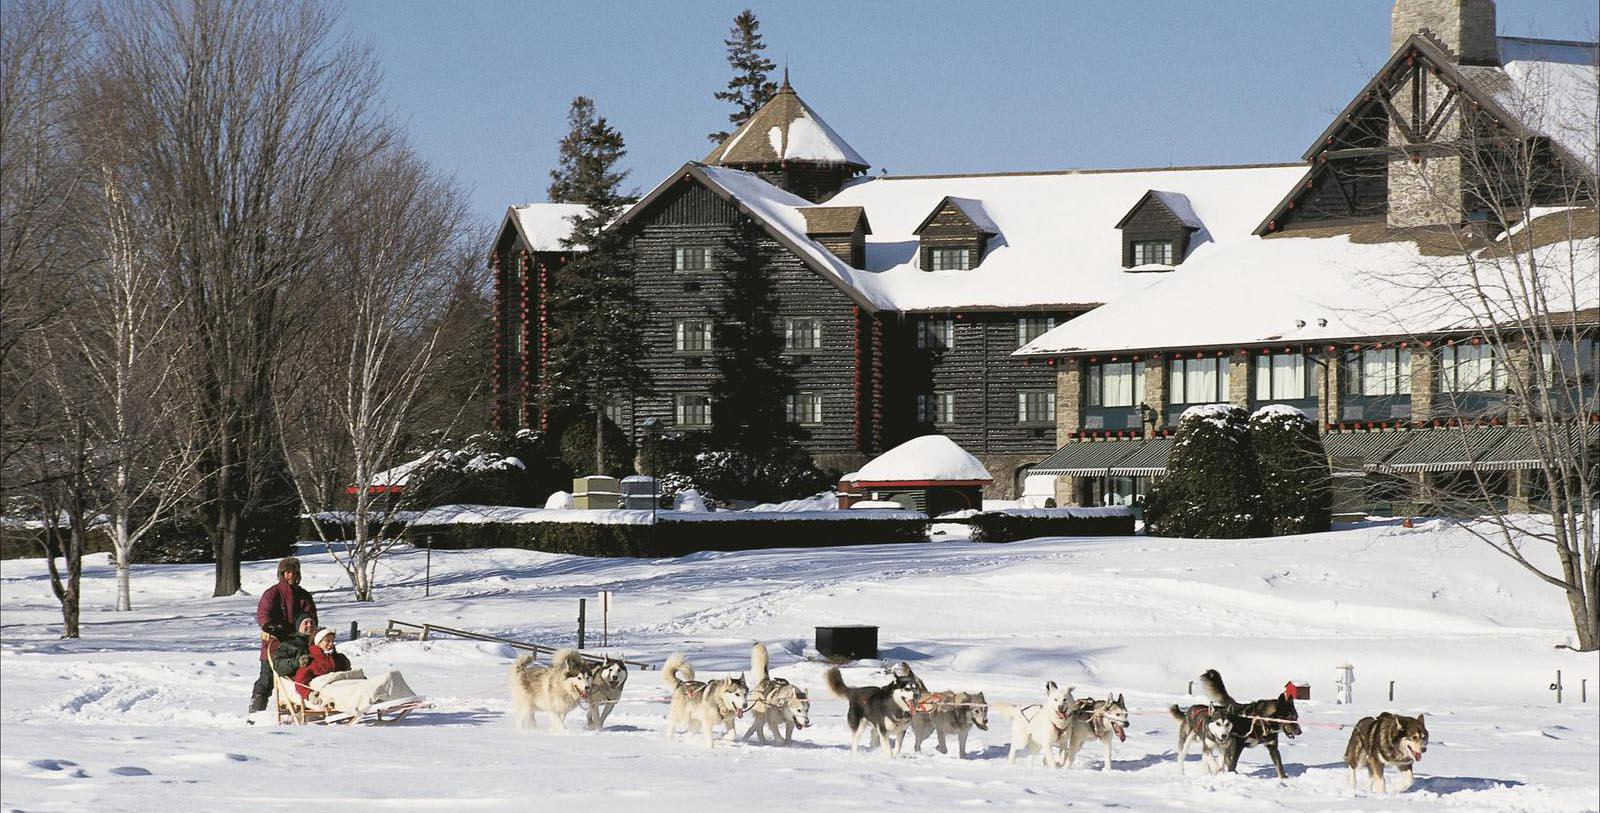 Image of Hotel Exterior with Guests Dogsledding Fairmont Le Château Montebello, 1930, Member of Historic Hotels Worldwide, in Montebello, Quebec, Overview